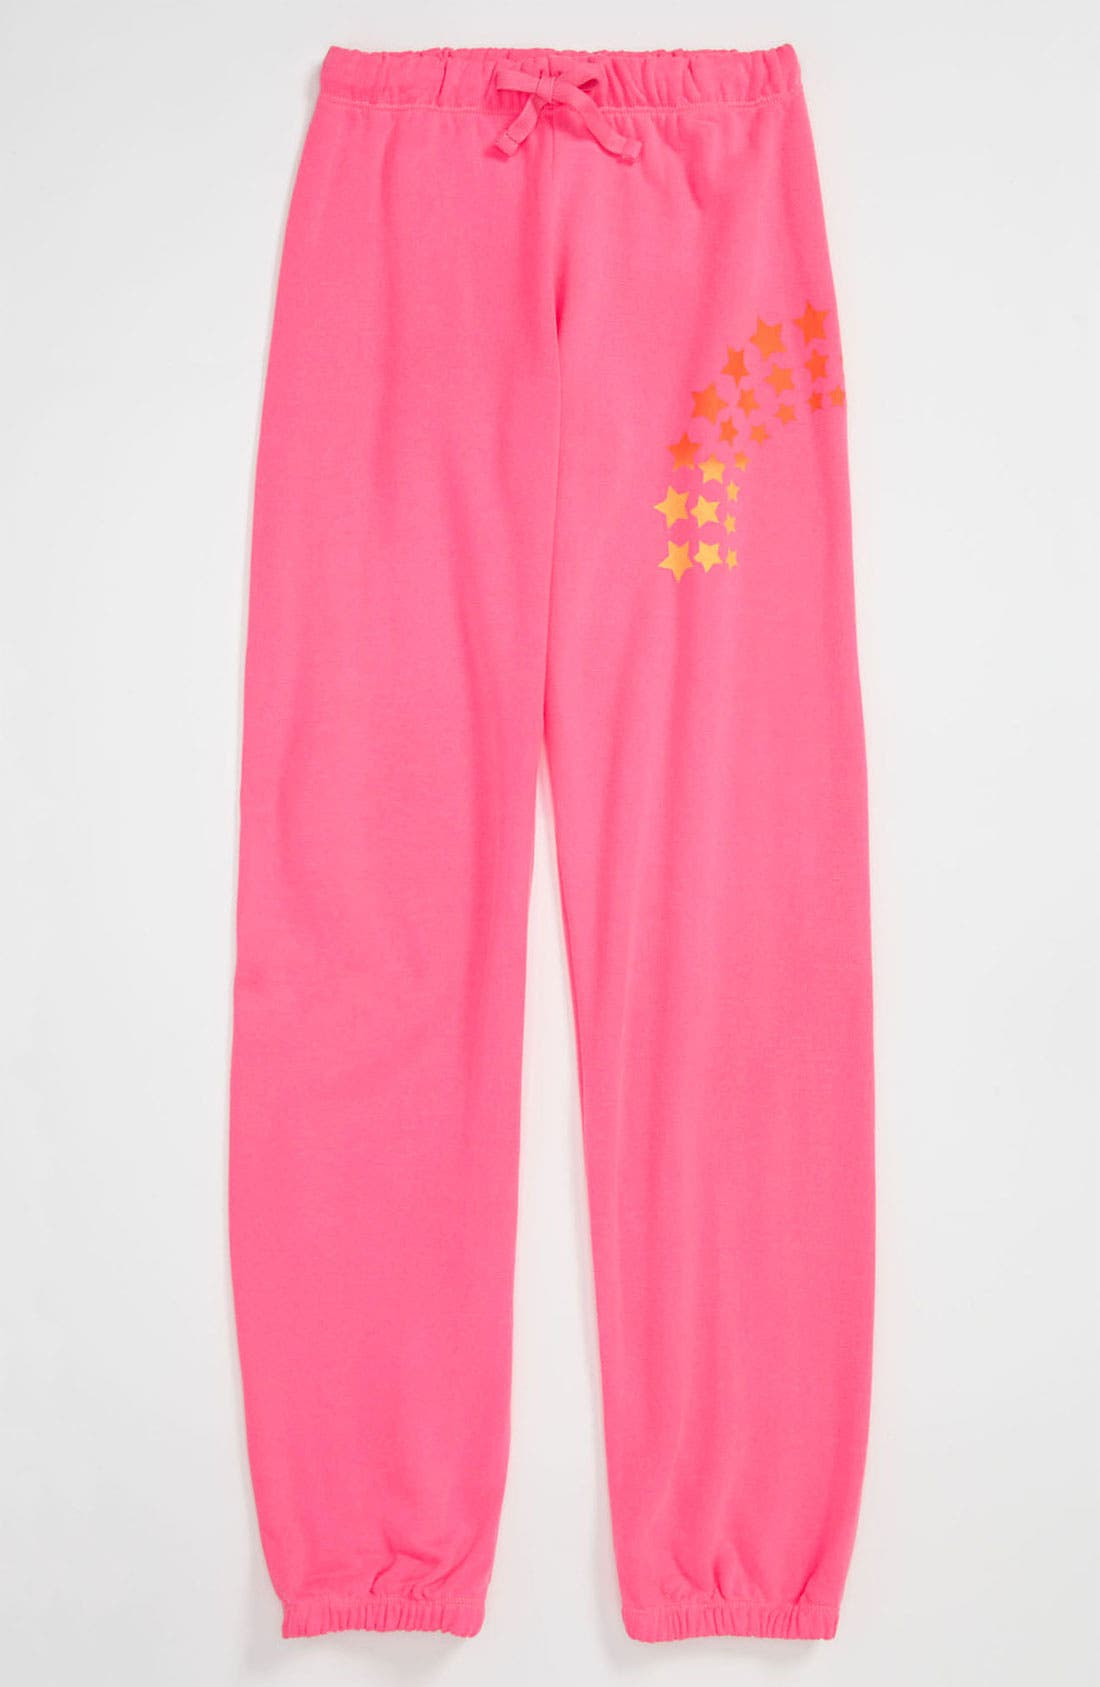 Main Image - Flowers by Zoe 'Stars' Sweatpants (Big Girls)